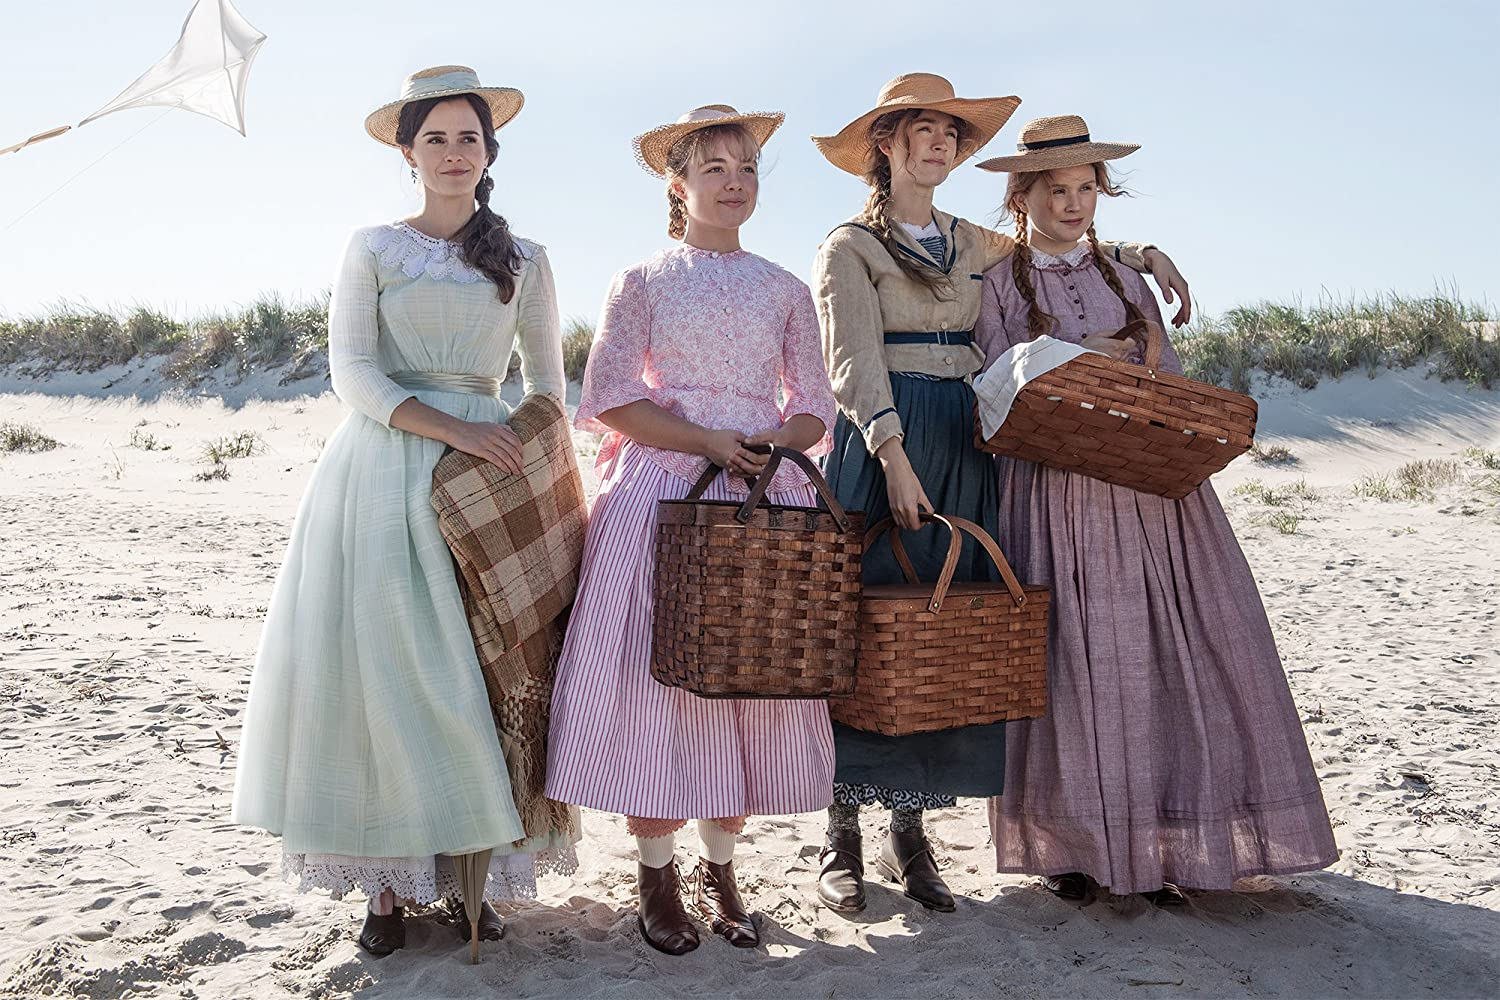 Emma Watson, Saoirse Ronan, Florence Pugh, and Eliza Scanlen in Little Women (2019)